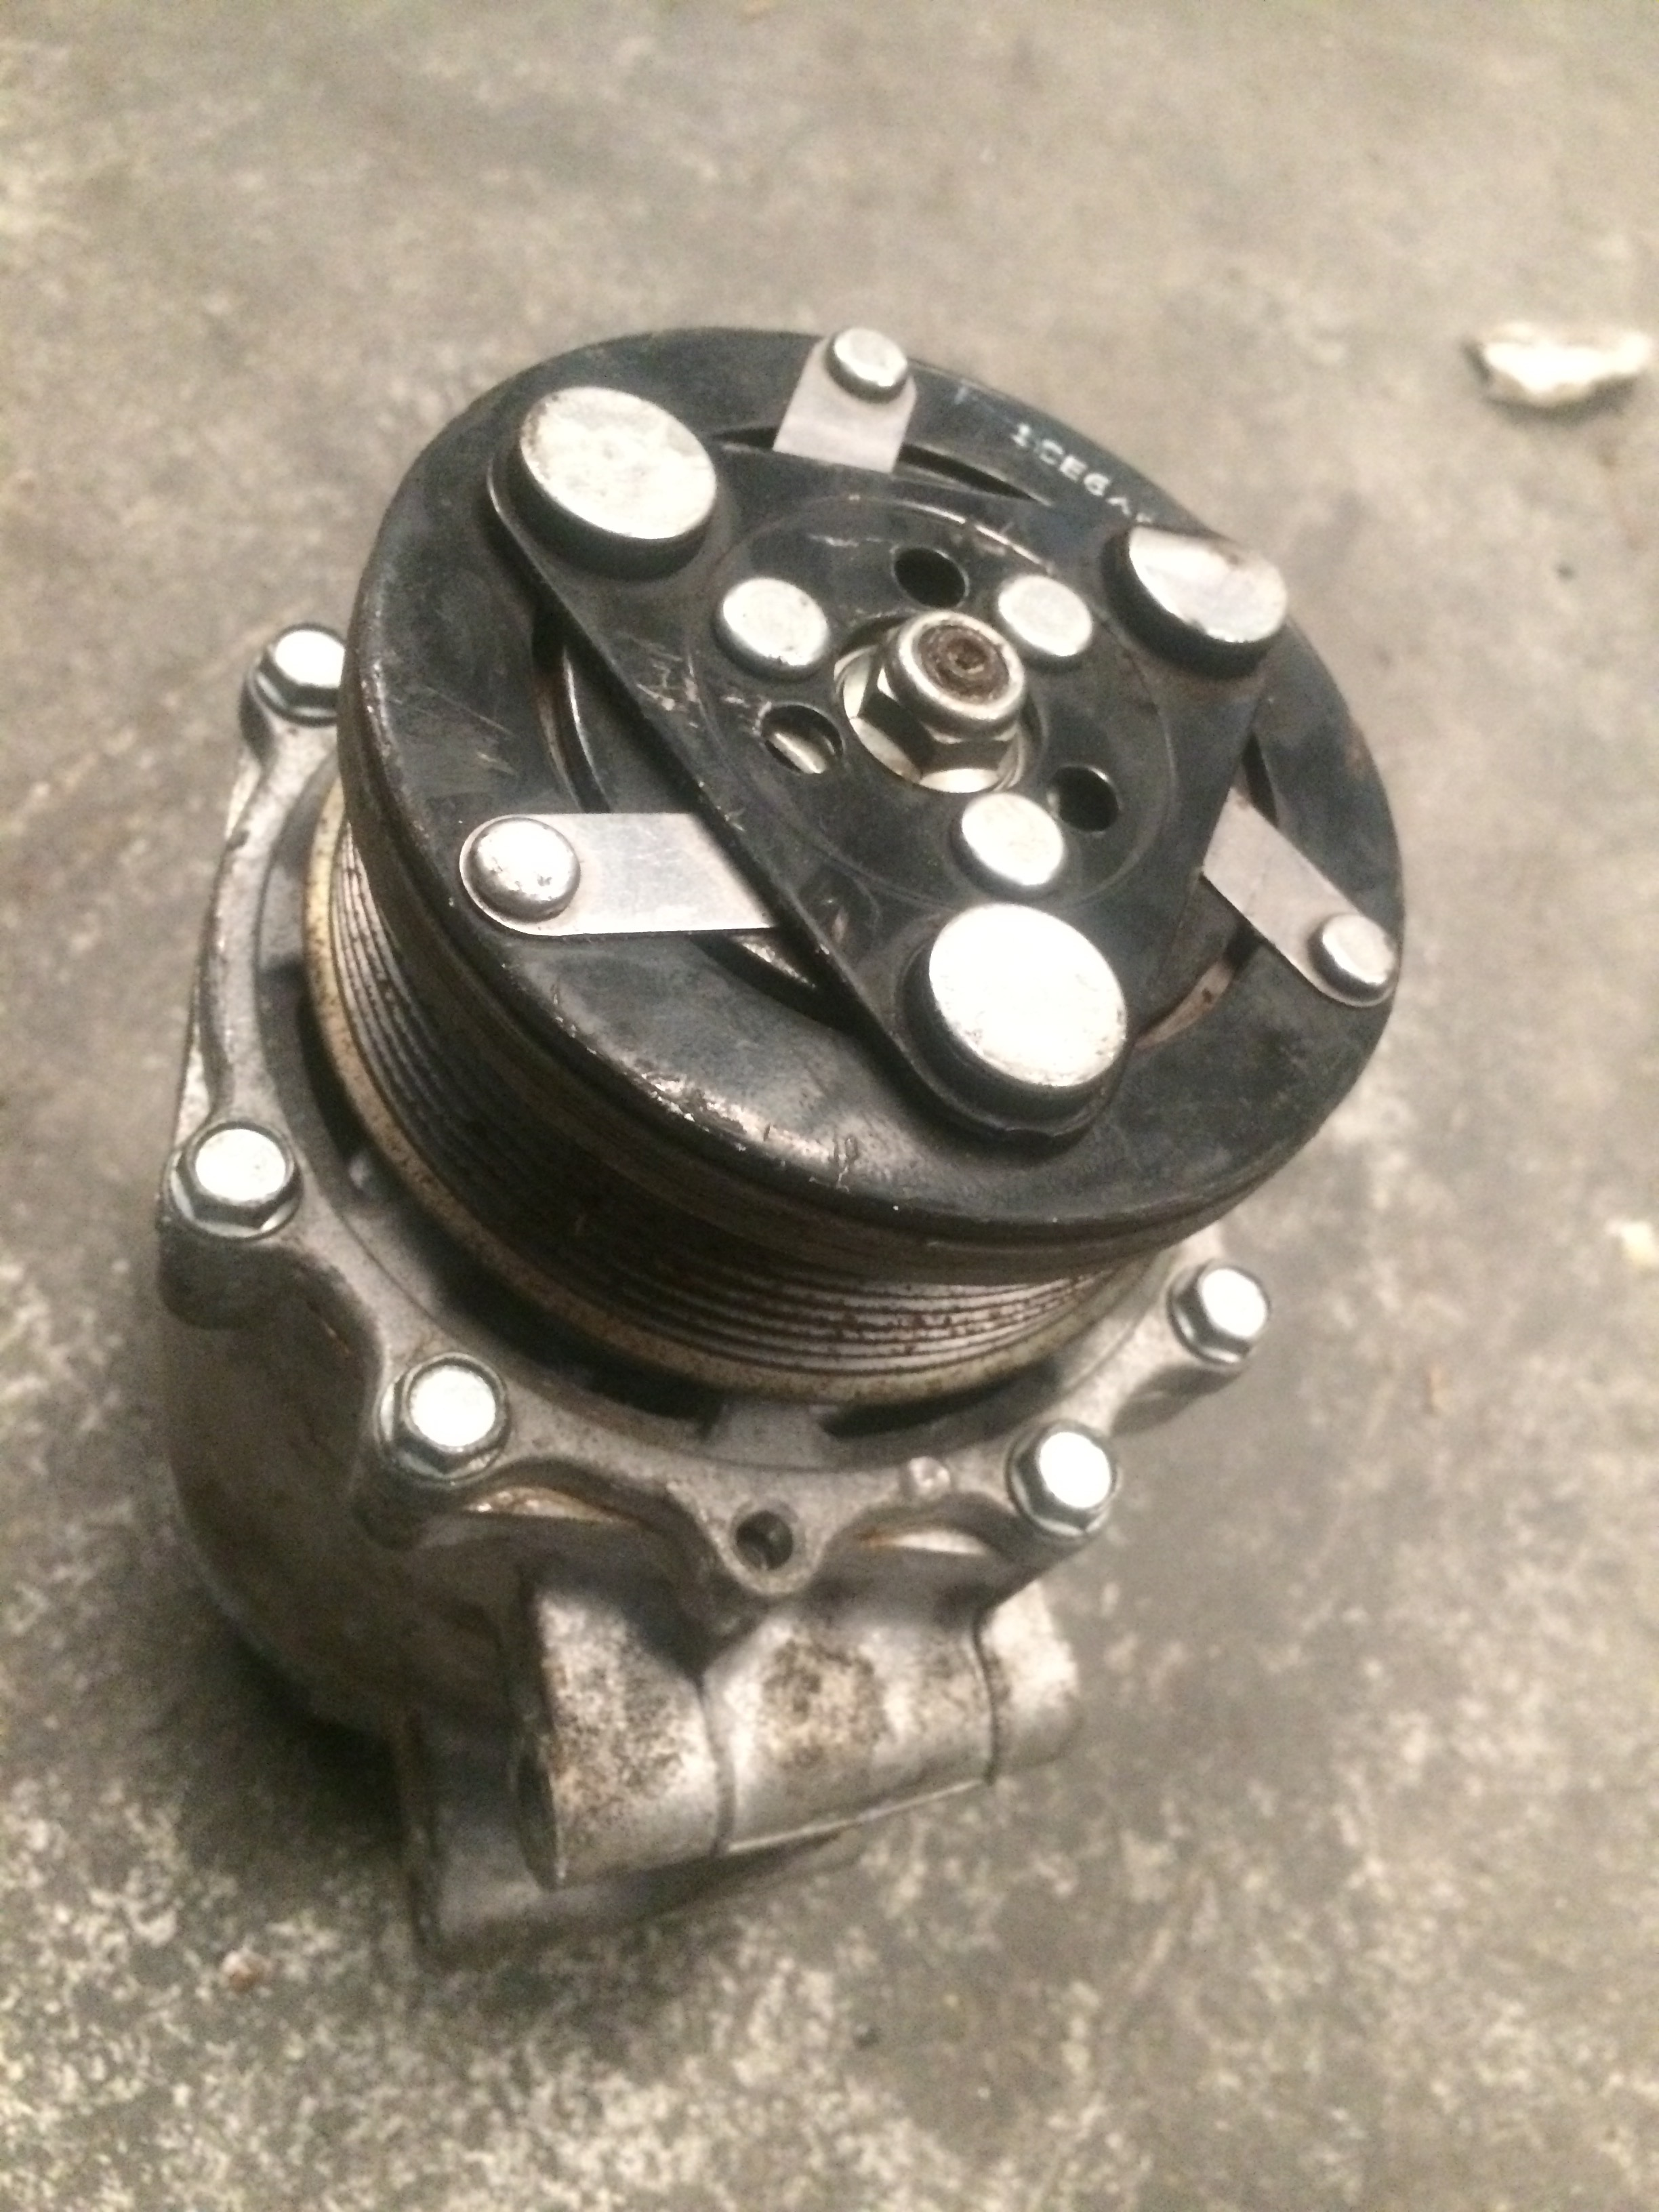 Compressor ar condicionado Honda civic 2007